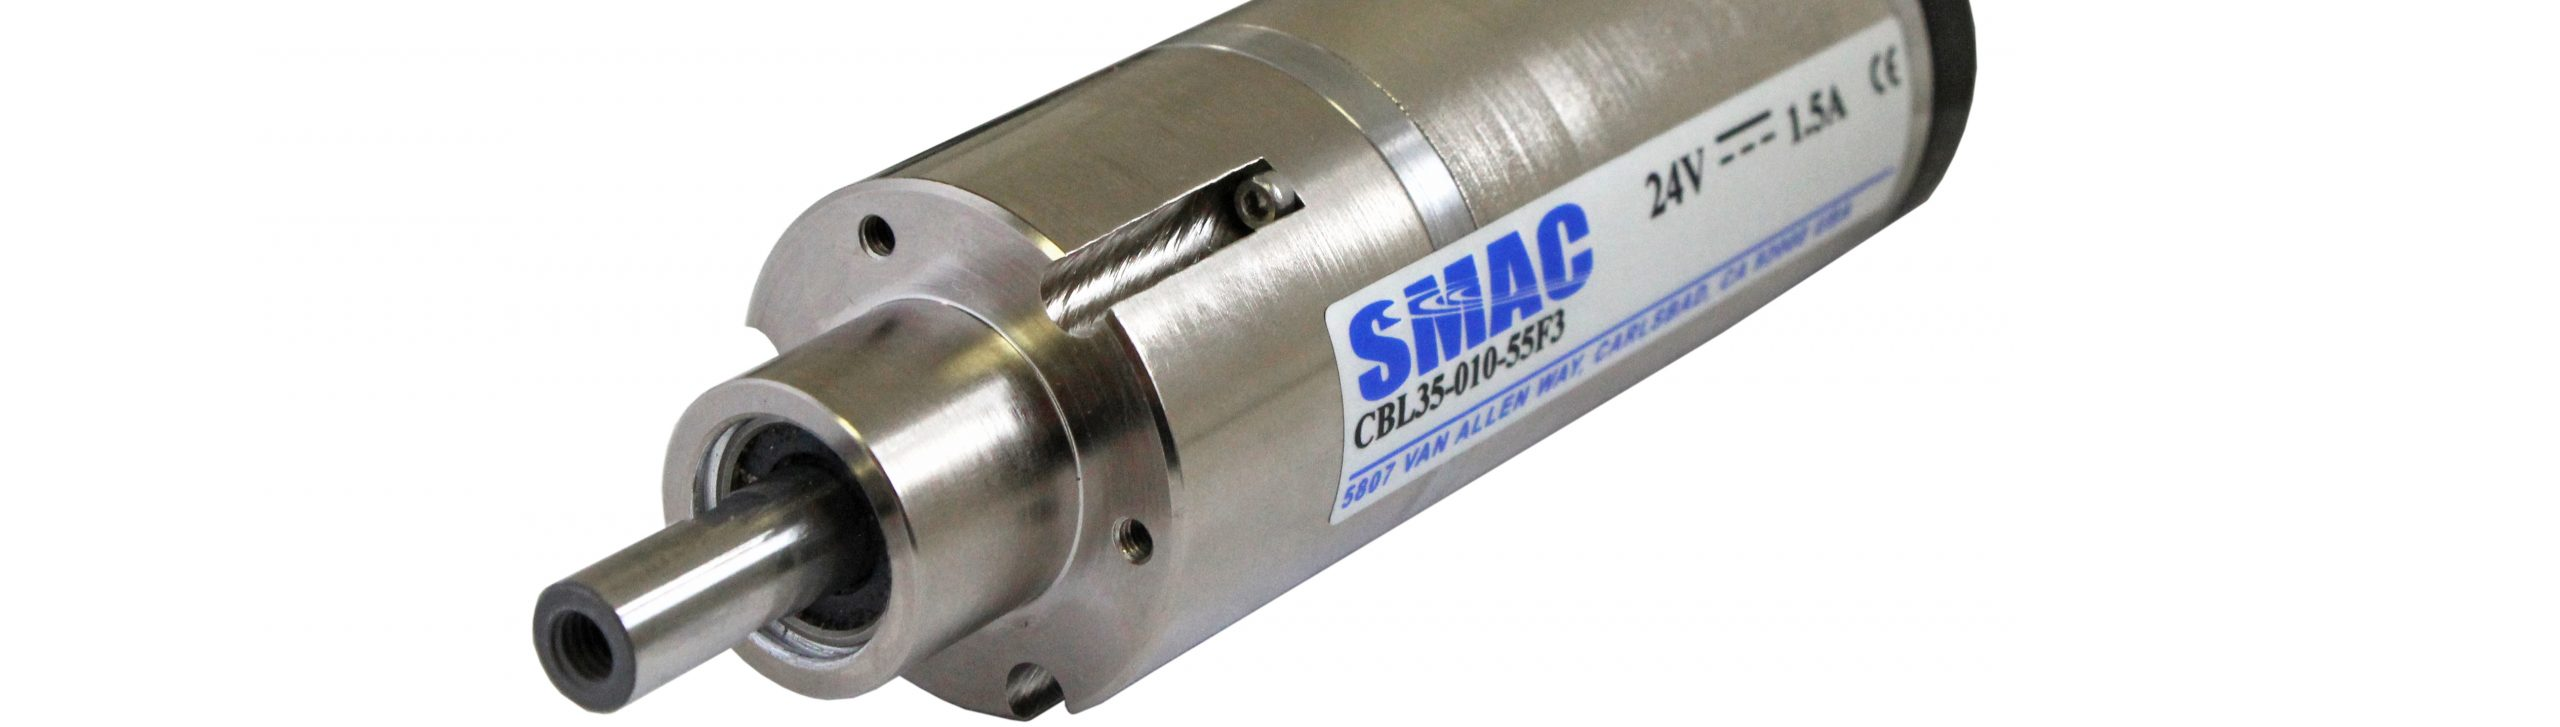 CBL35 cylindrical moving coil actuator